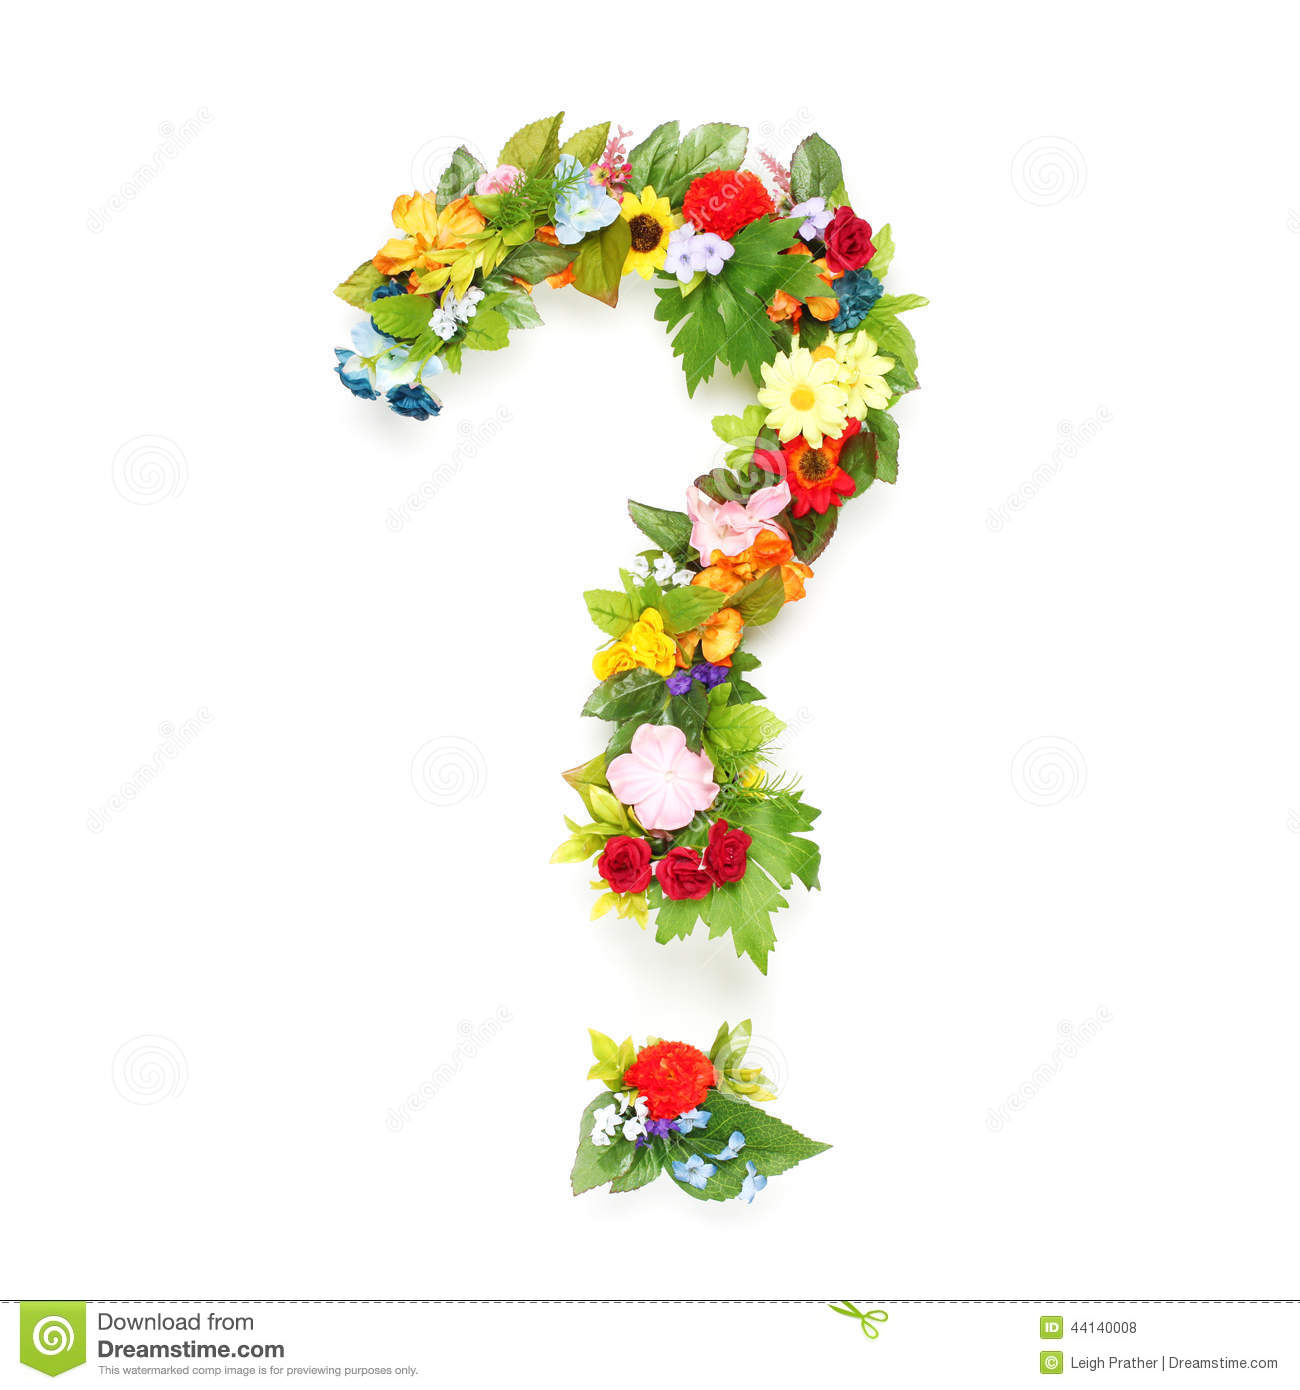 Pflanze Mit O Question Mark Made Of Leaves And Flowers Stock Photo Image